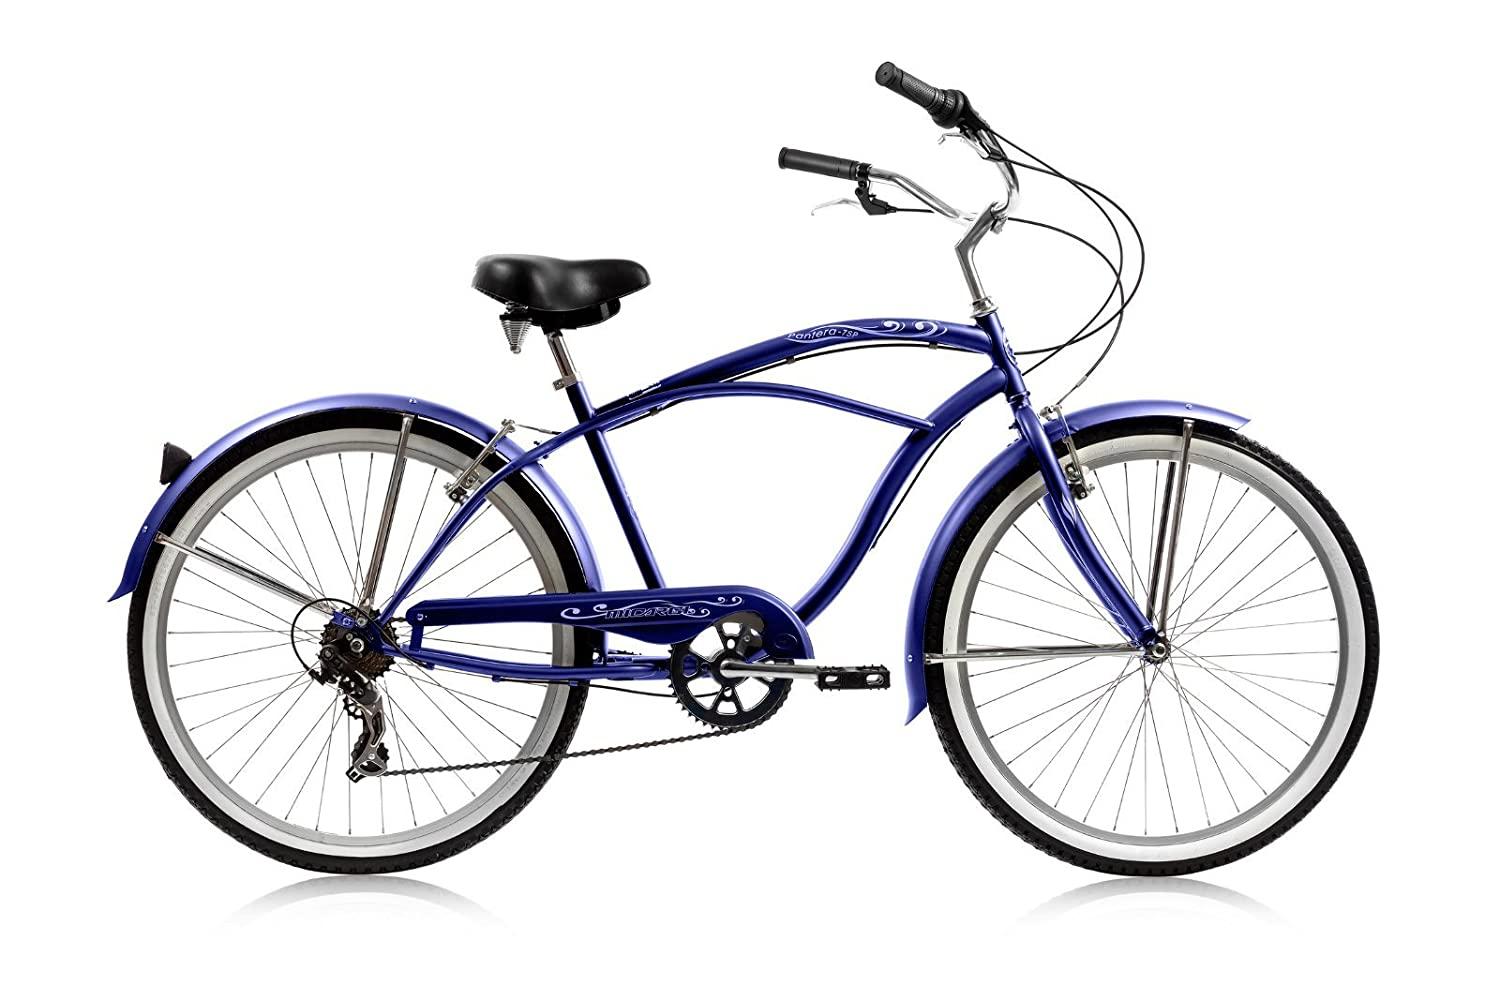 Micargi Pantera 7-speed 26 for men Blue , Beach Cruiser Bike Schwinn Nirve Firmstrong Style